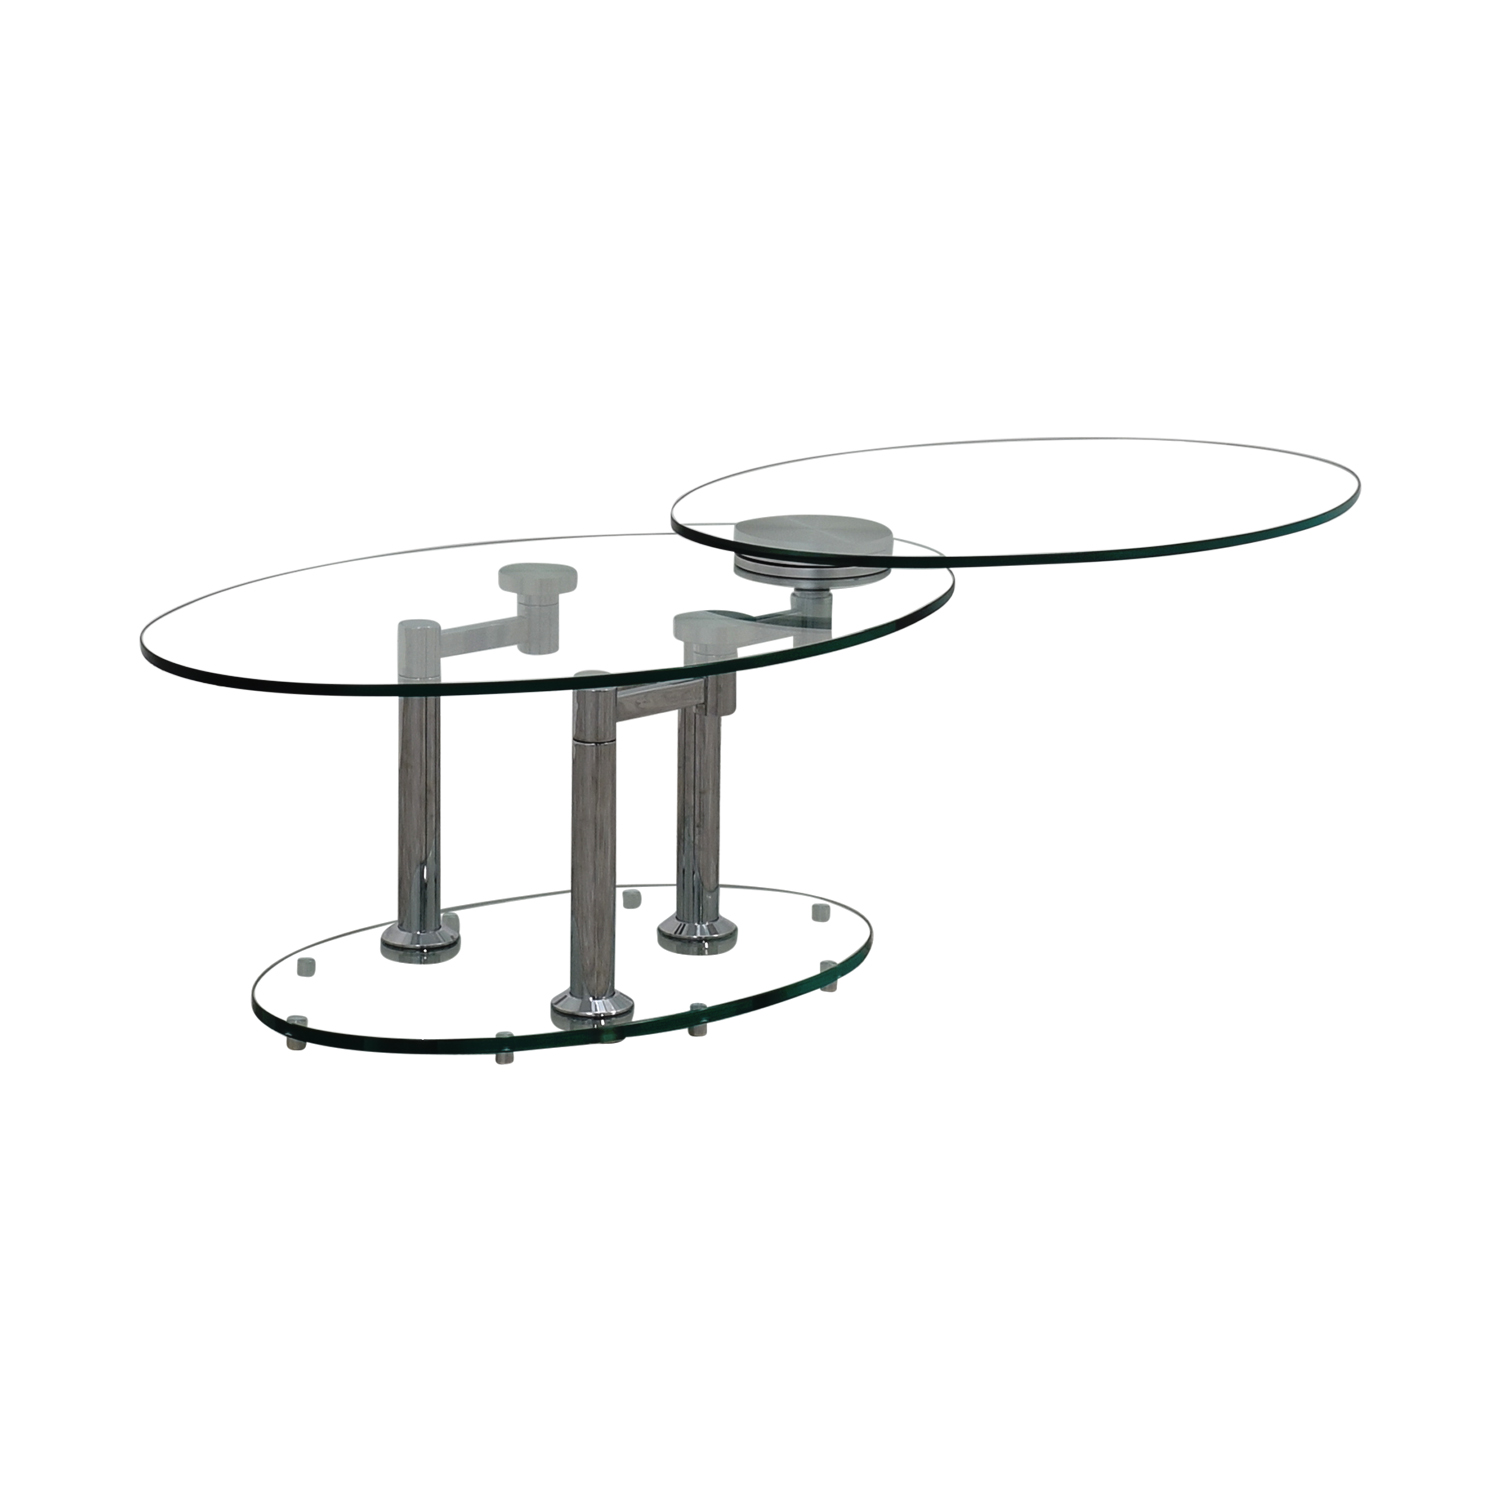 Art Deco Movable Oval Glass & Metal Coffee Table for sale